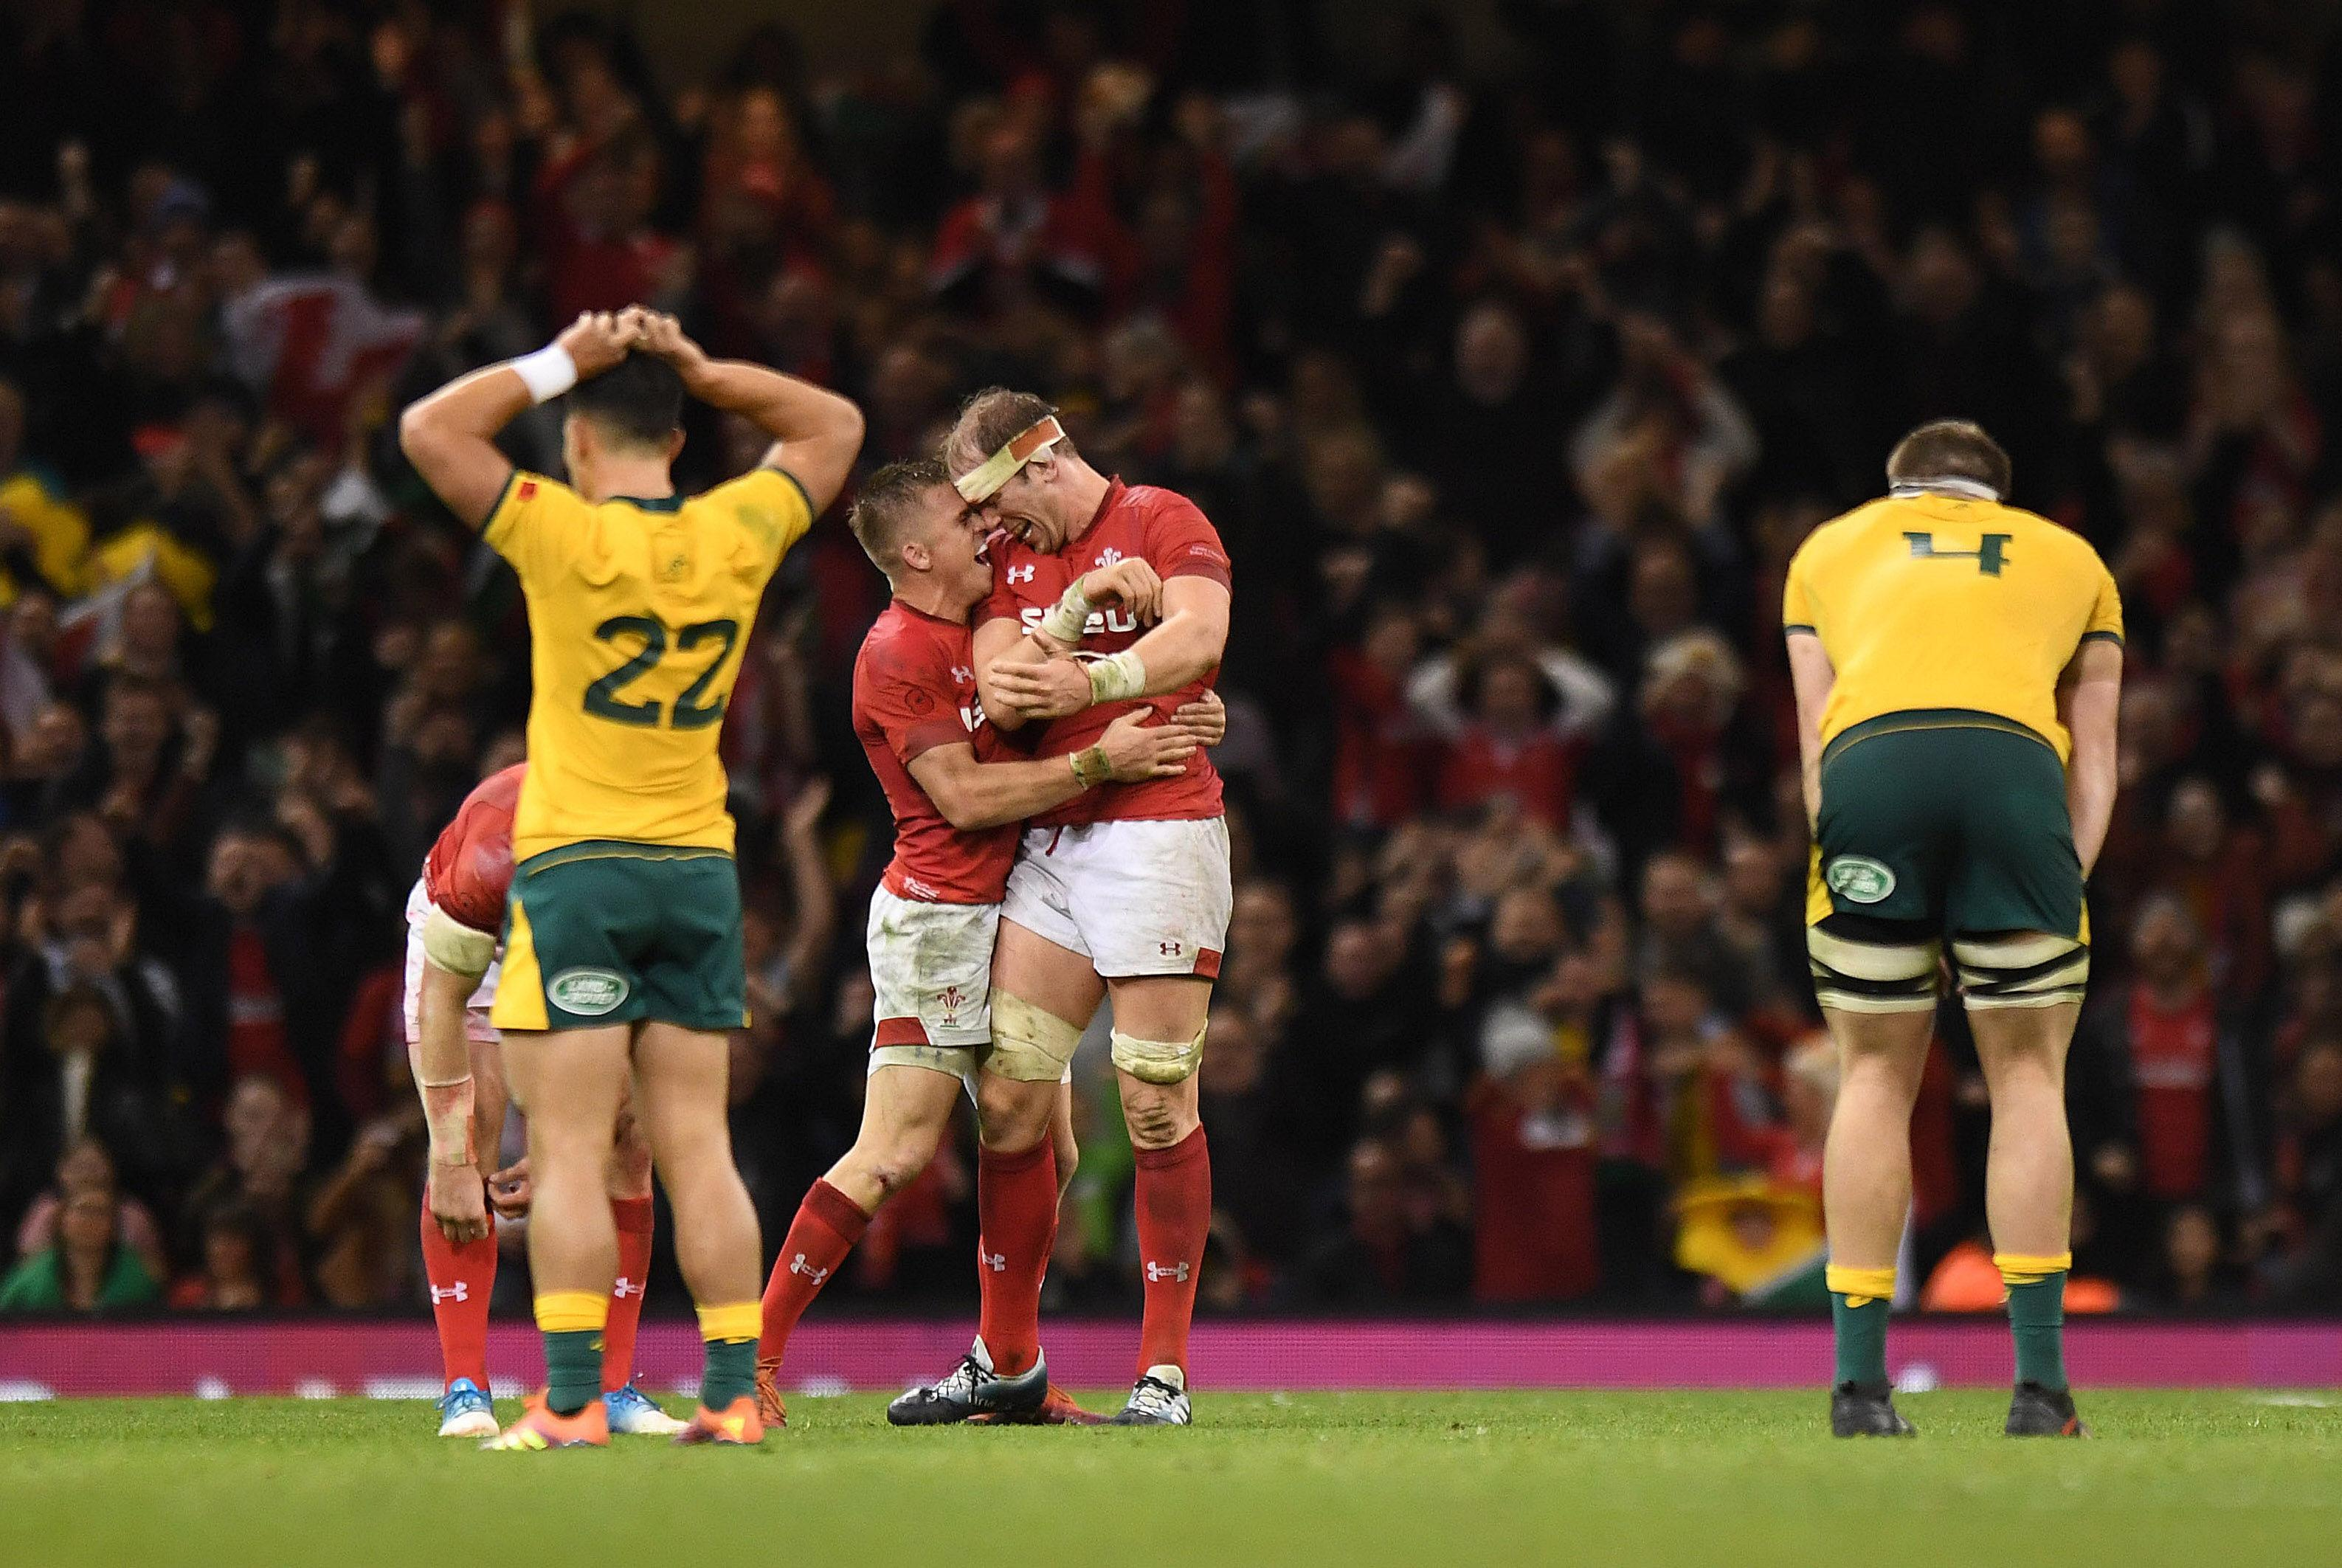 As Wales were left celebrating, a stunned Wallabies side held their head in their hands